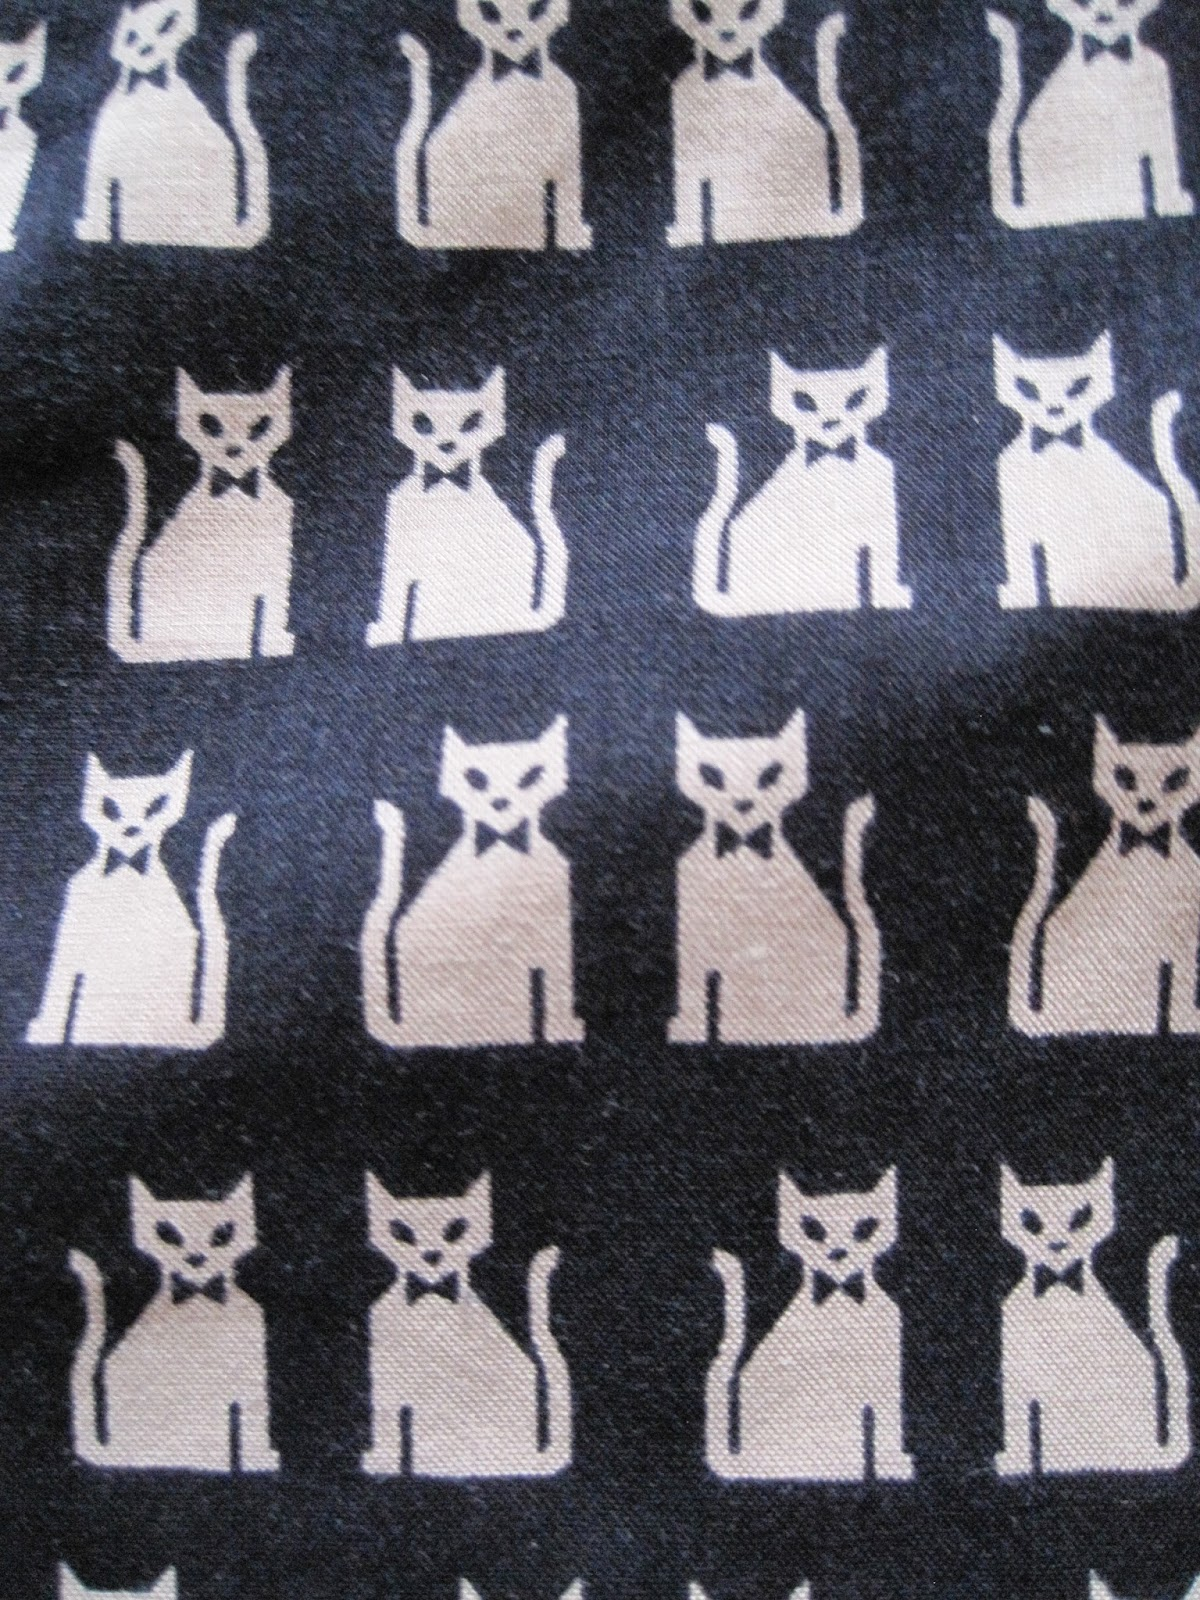 estampado gatos cat print